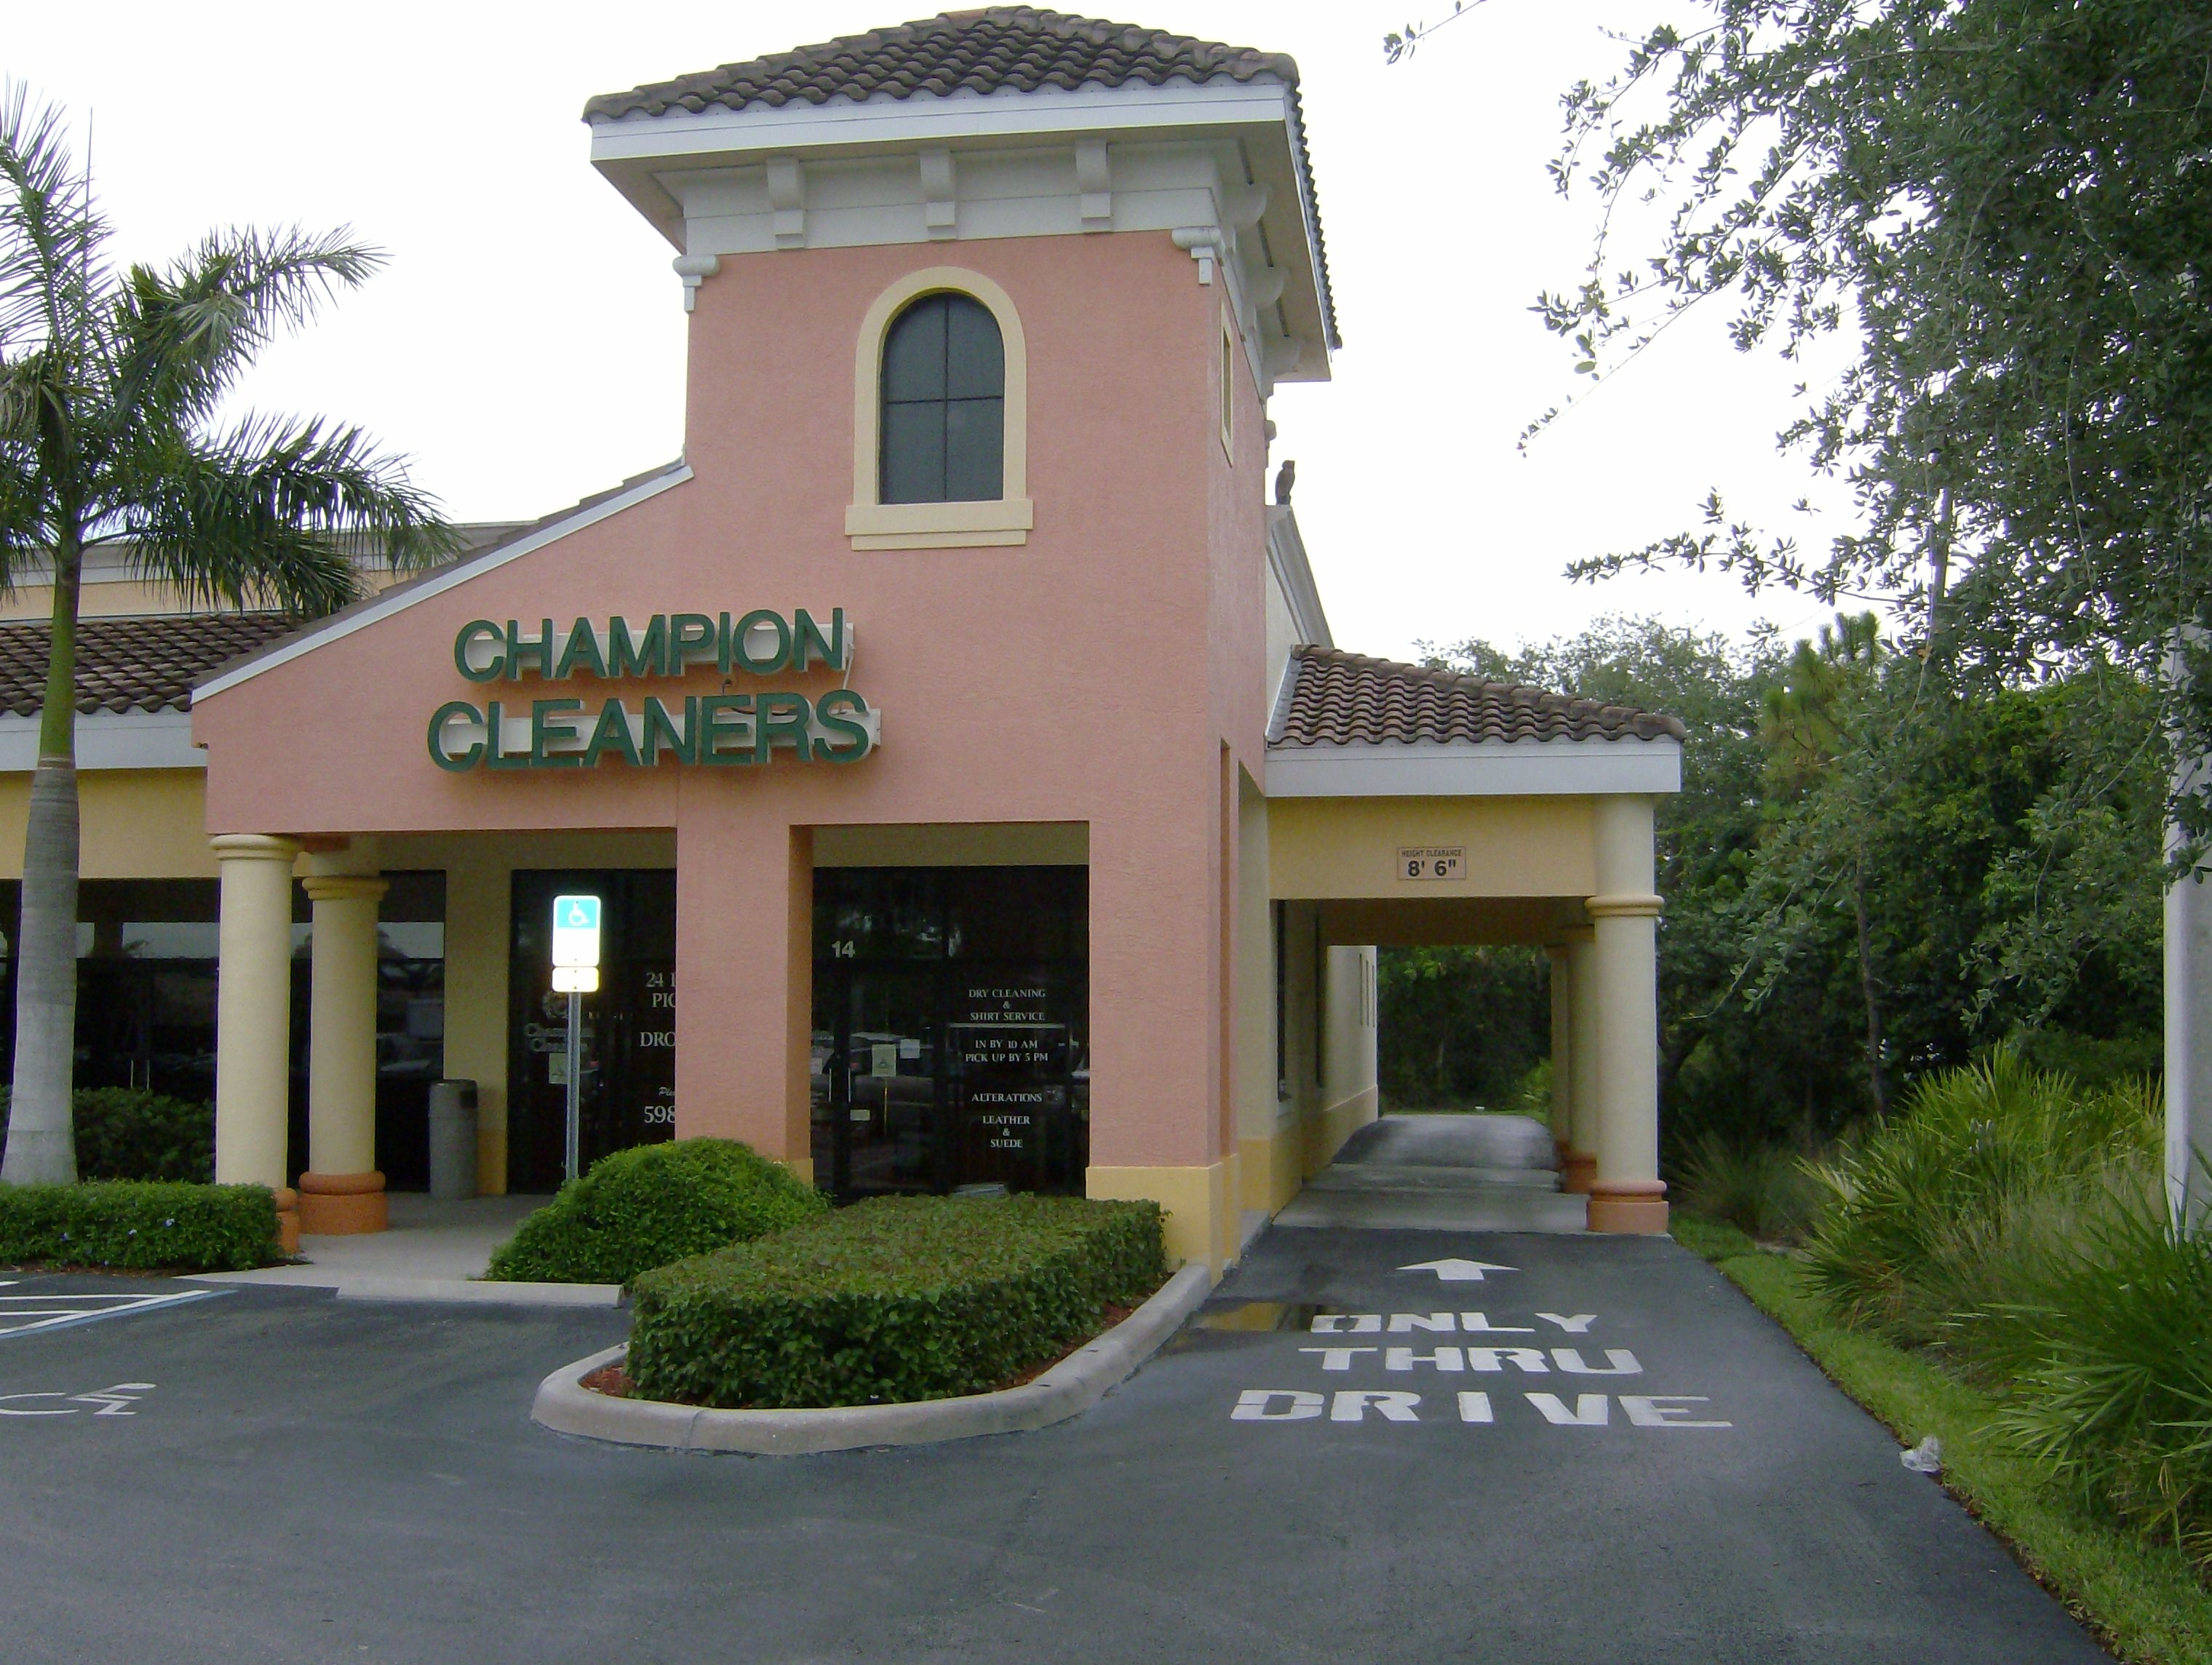 Champion Cleaners image 11